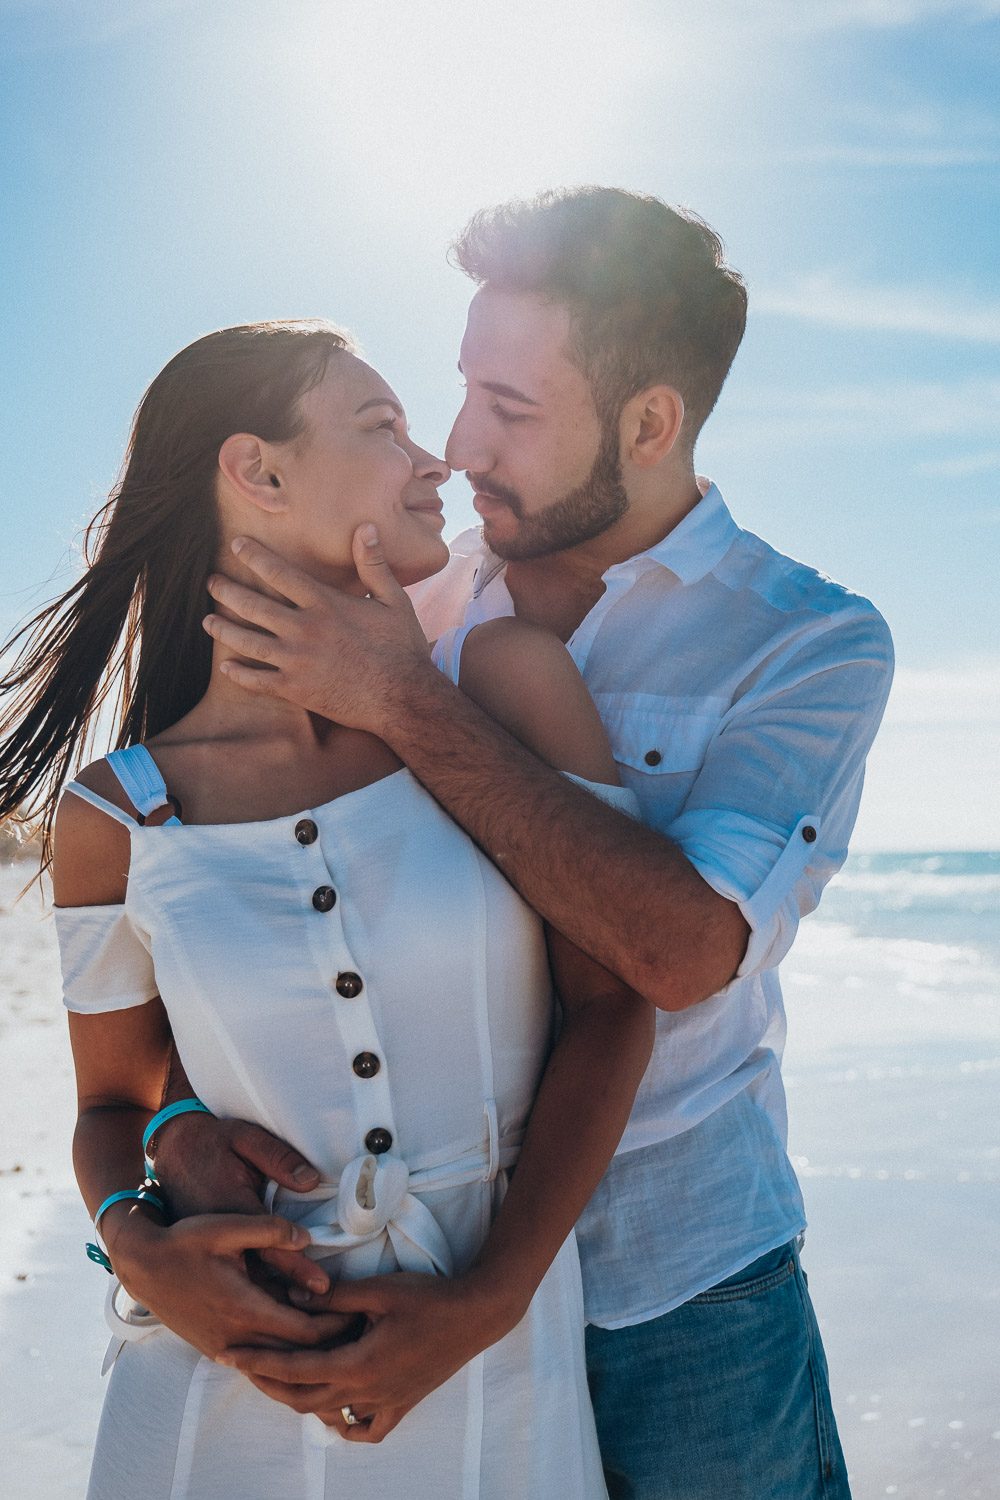 Couple Shooting, Engagement Shooting, Wedding, Lovestory in Cuba,